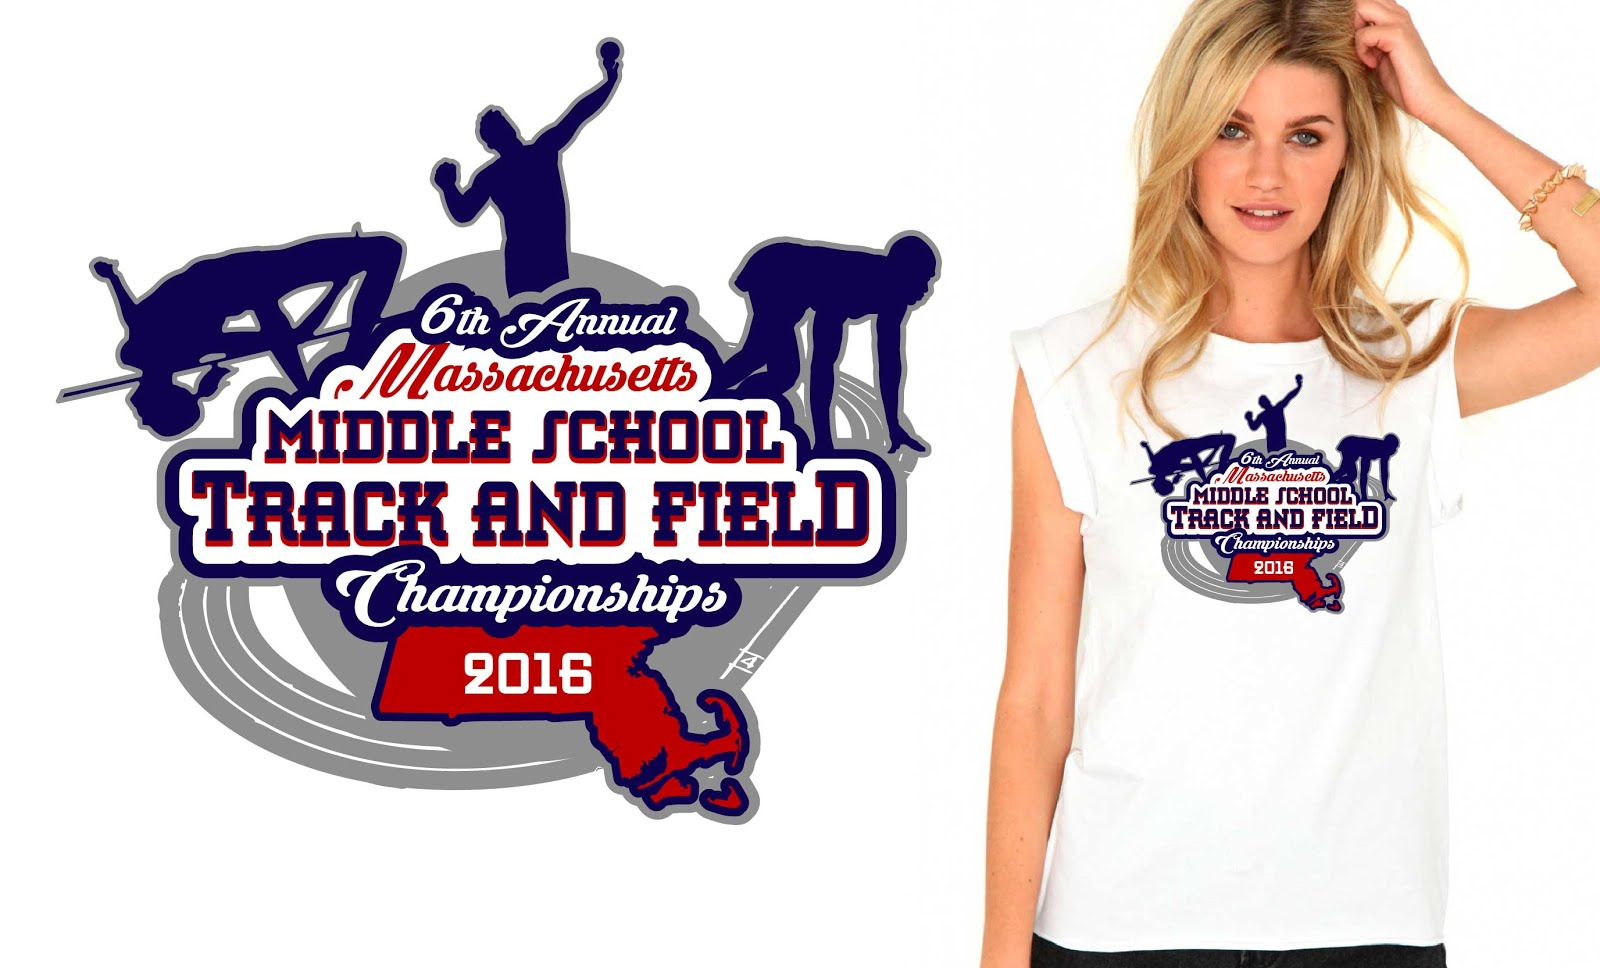 T-shirt logo design